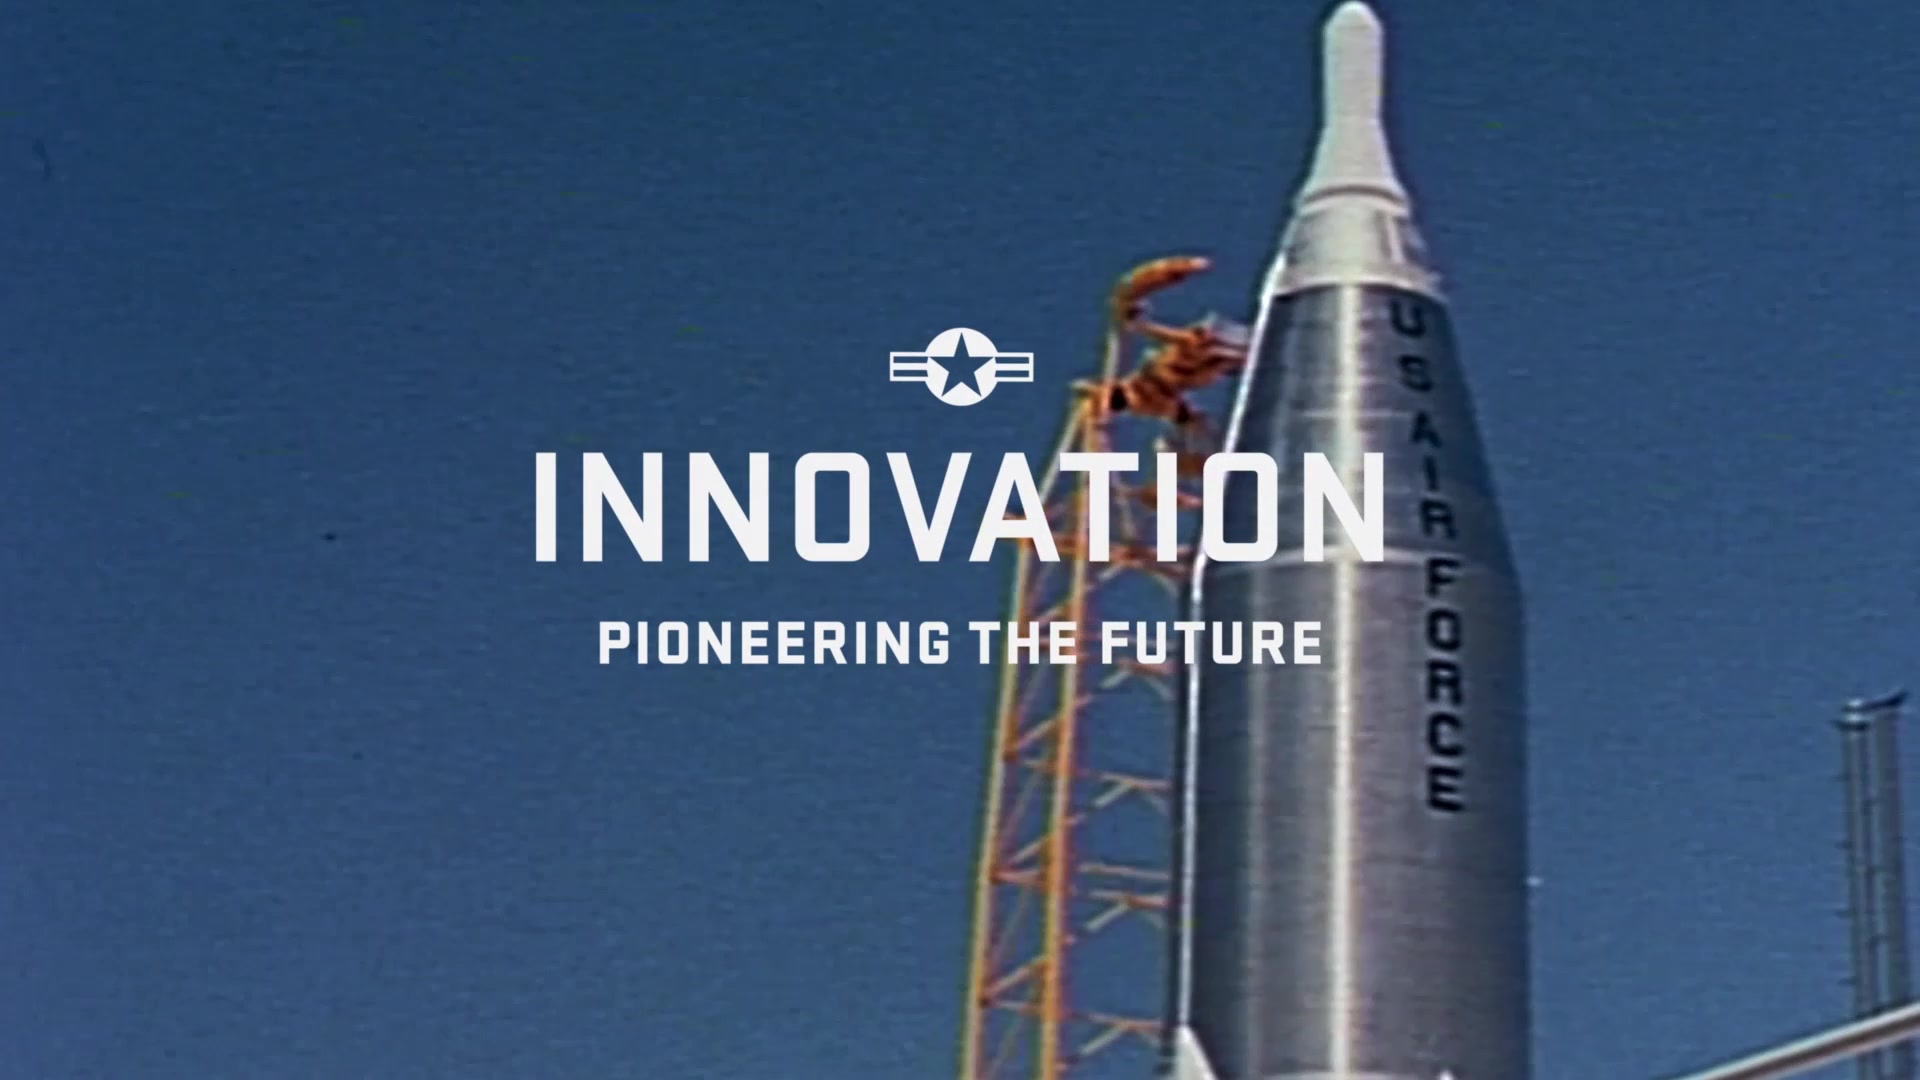 Video of Air Force Innovation Heritage